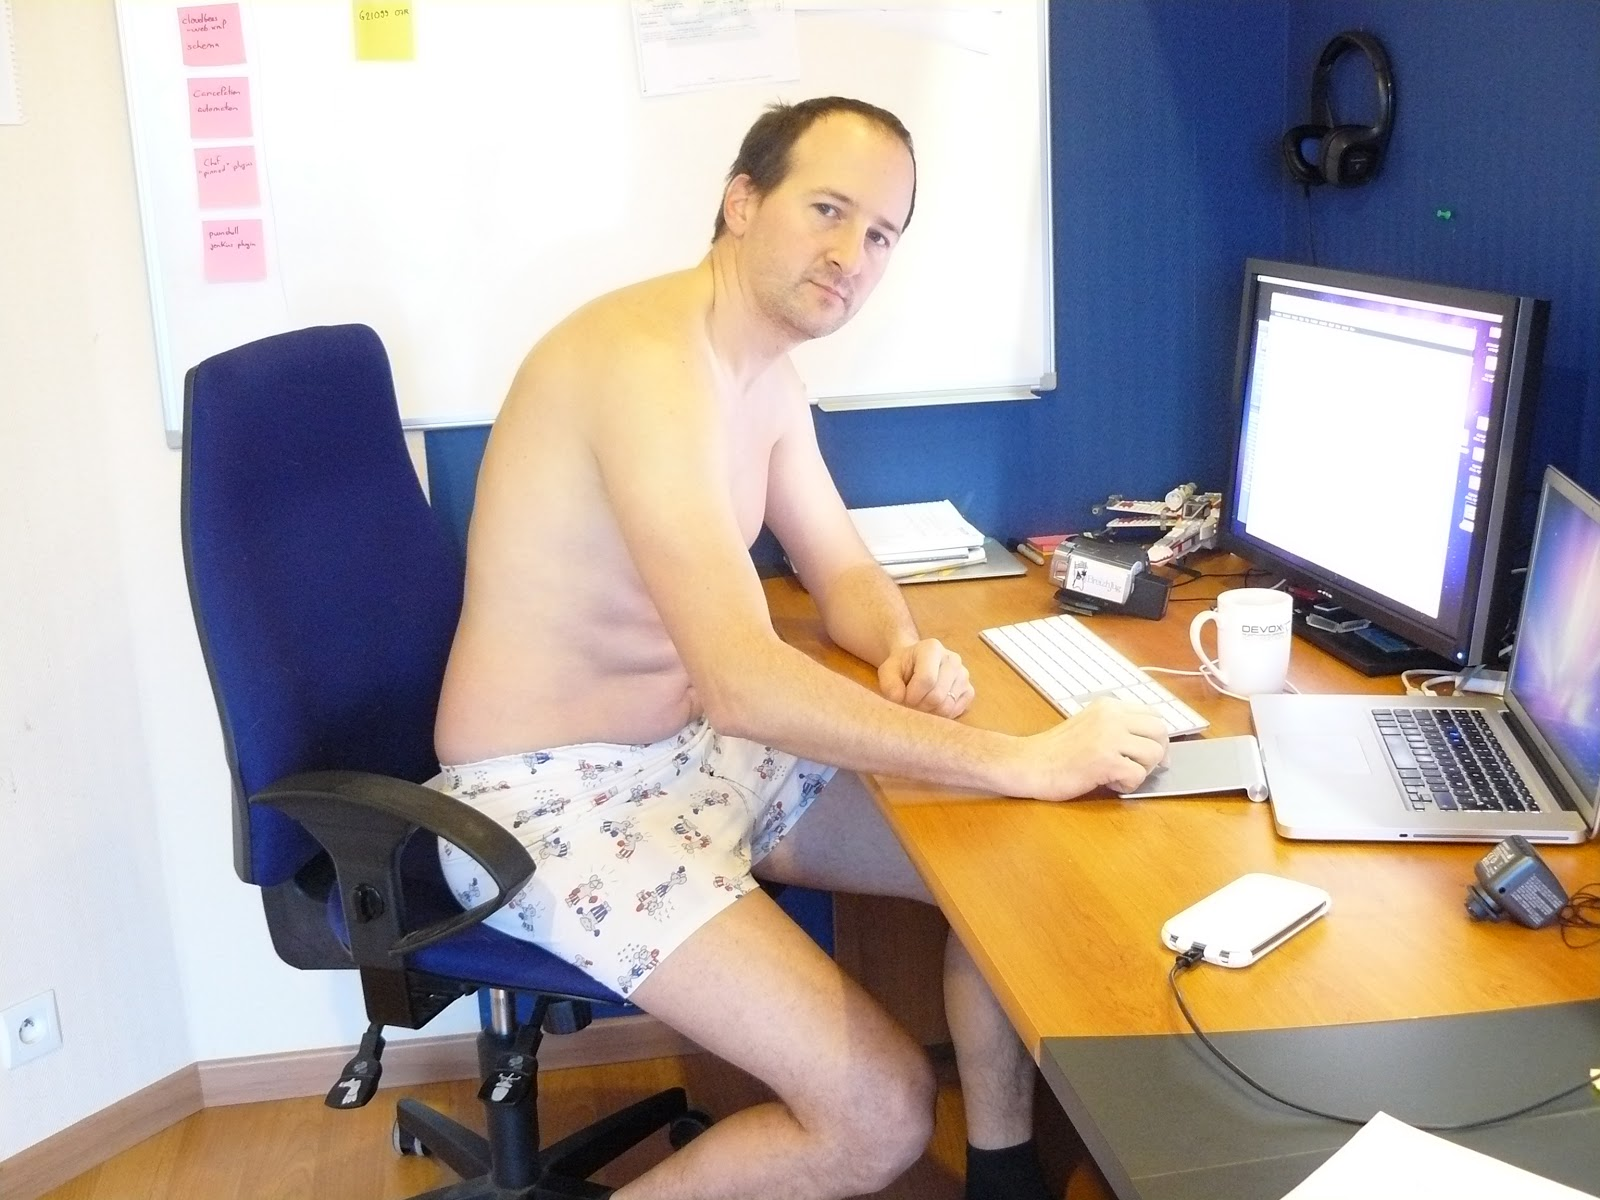 work-from-home-nopants Blank Template - Imgflip